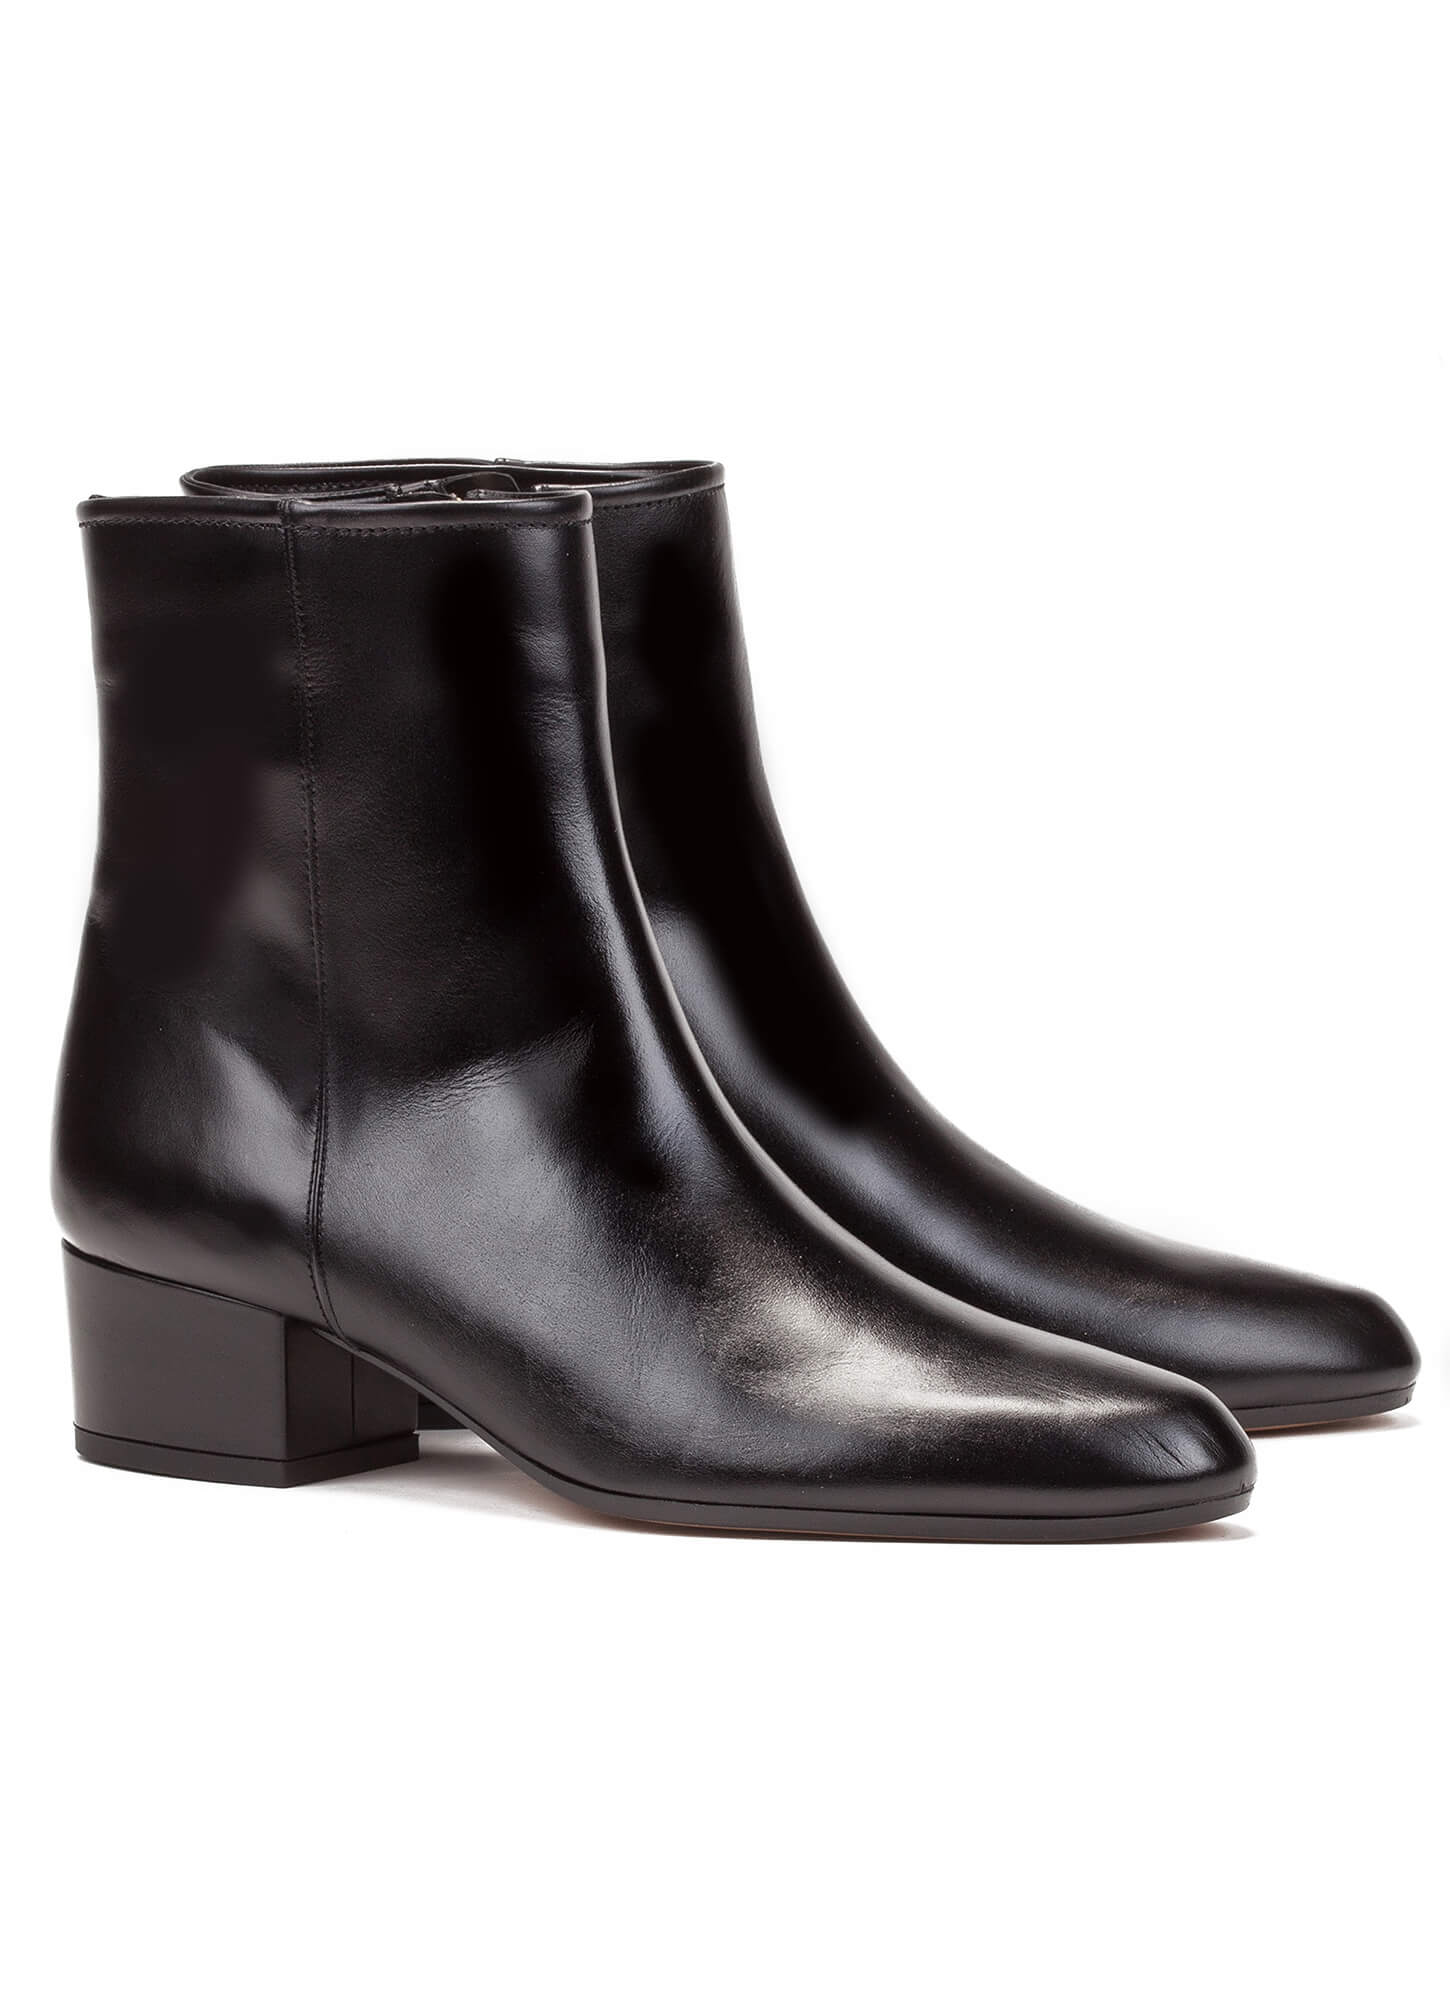 fc5f57440c6 Low heel ankle boot in black leather - online shoe store Pura Lopez ...